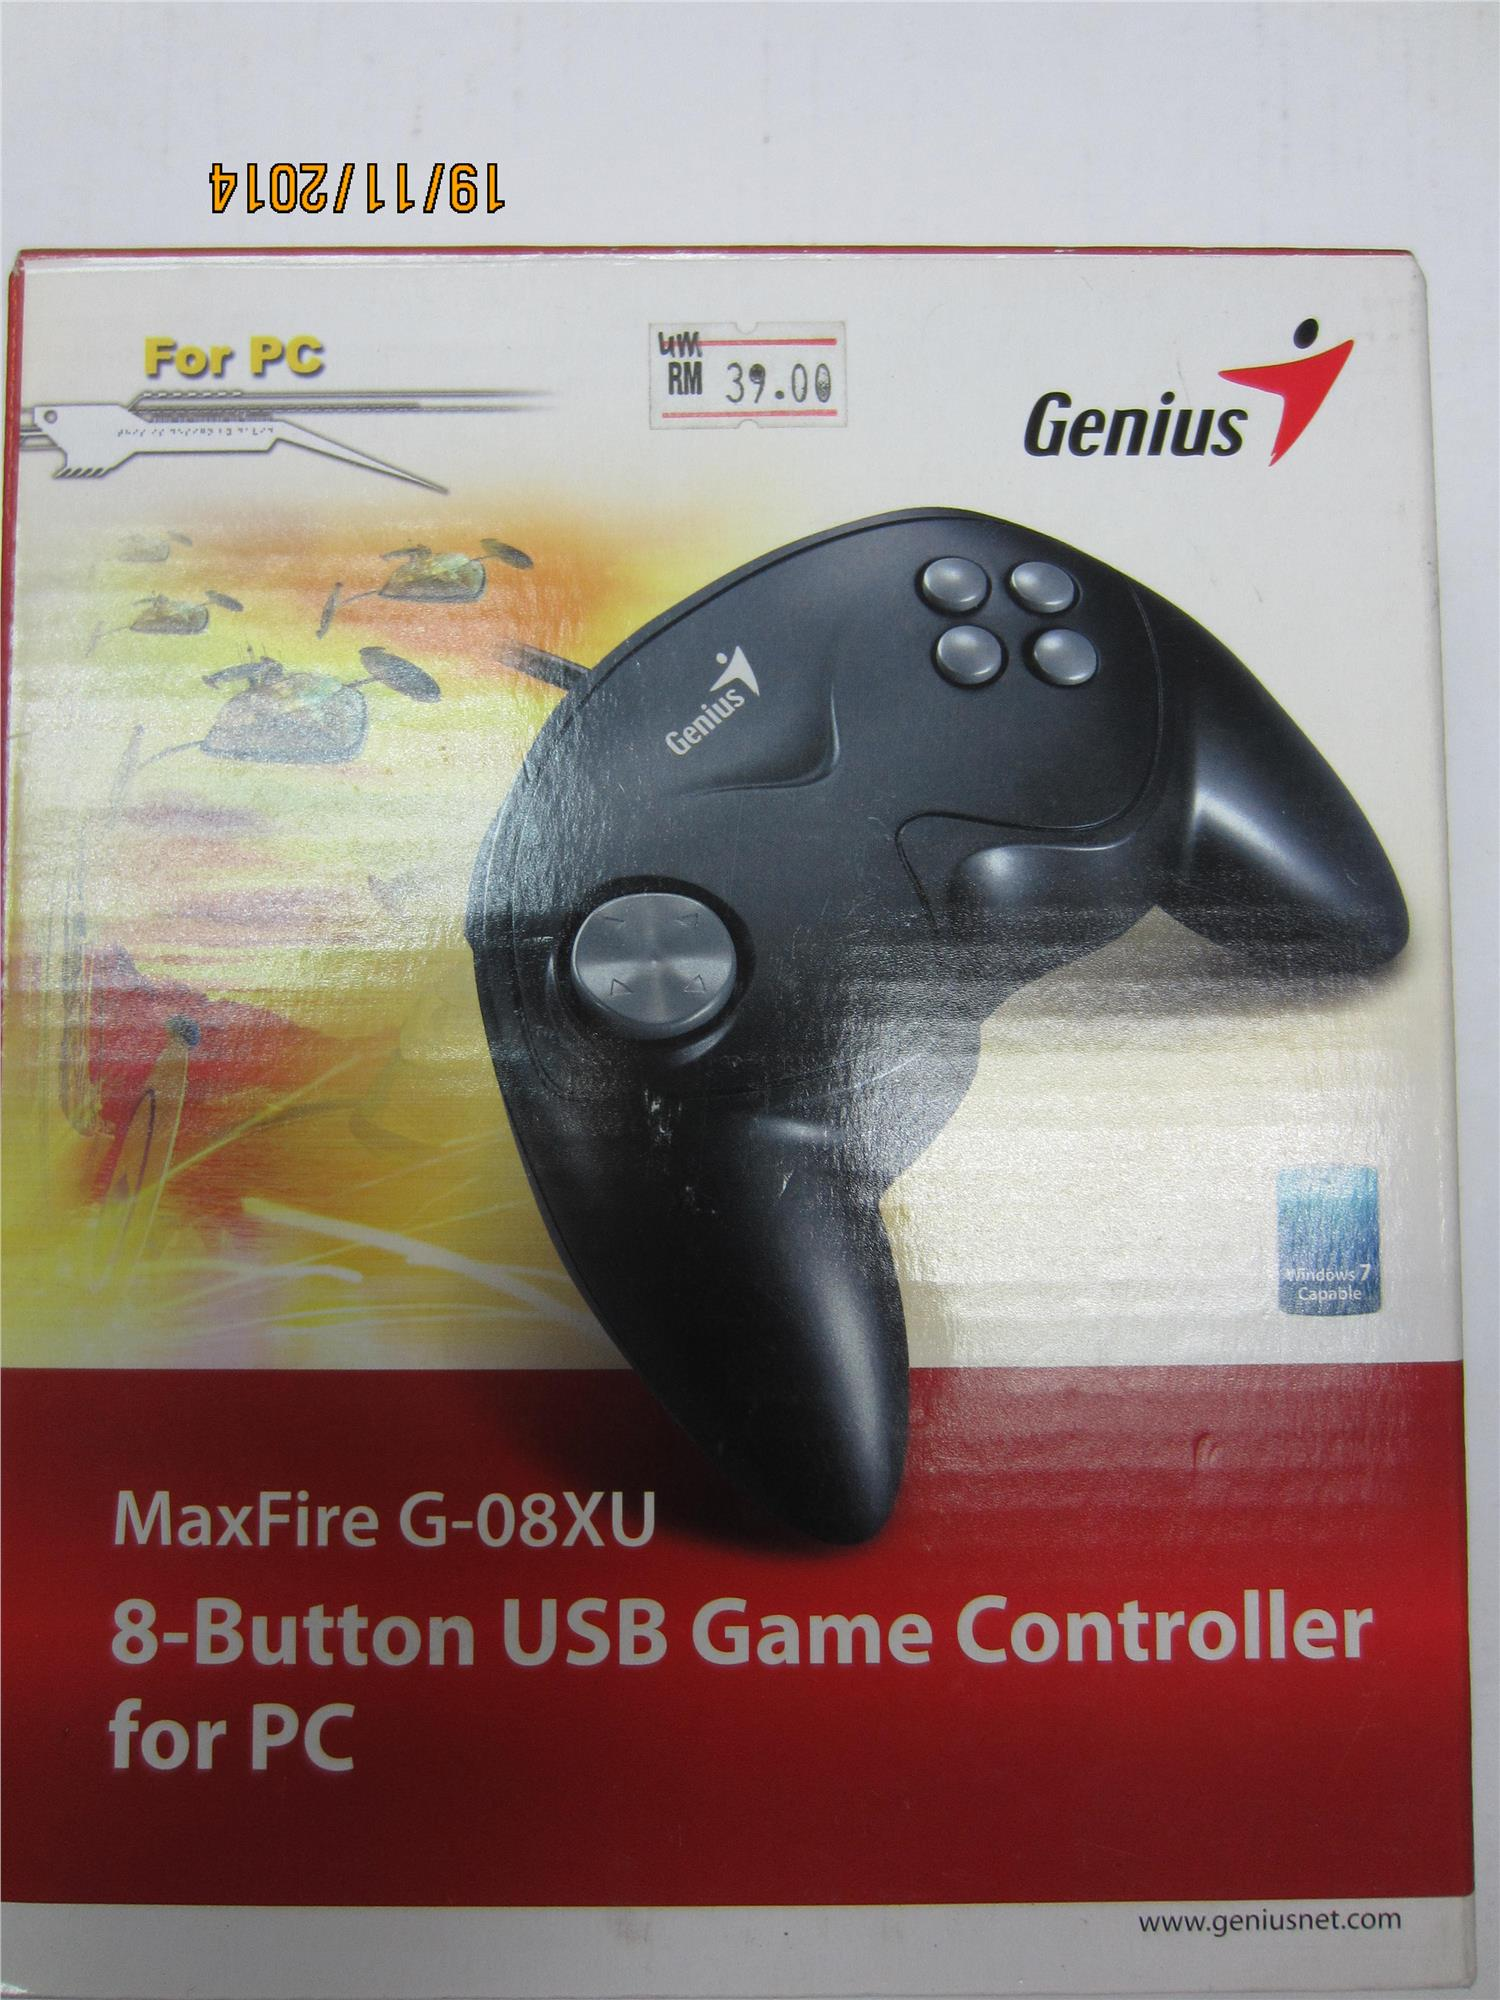 MAXFIRE G-08XU DOWNLOAD DRIVERS